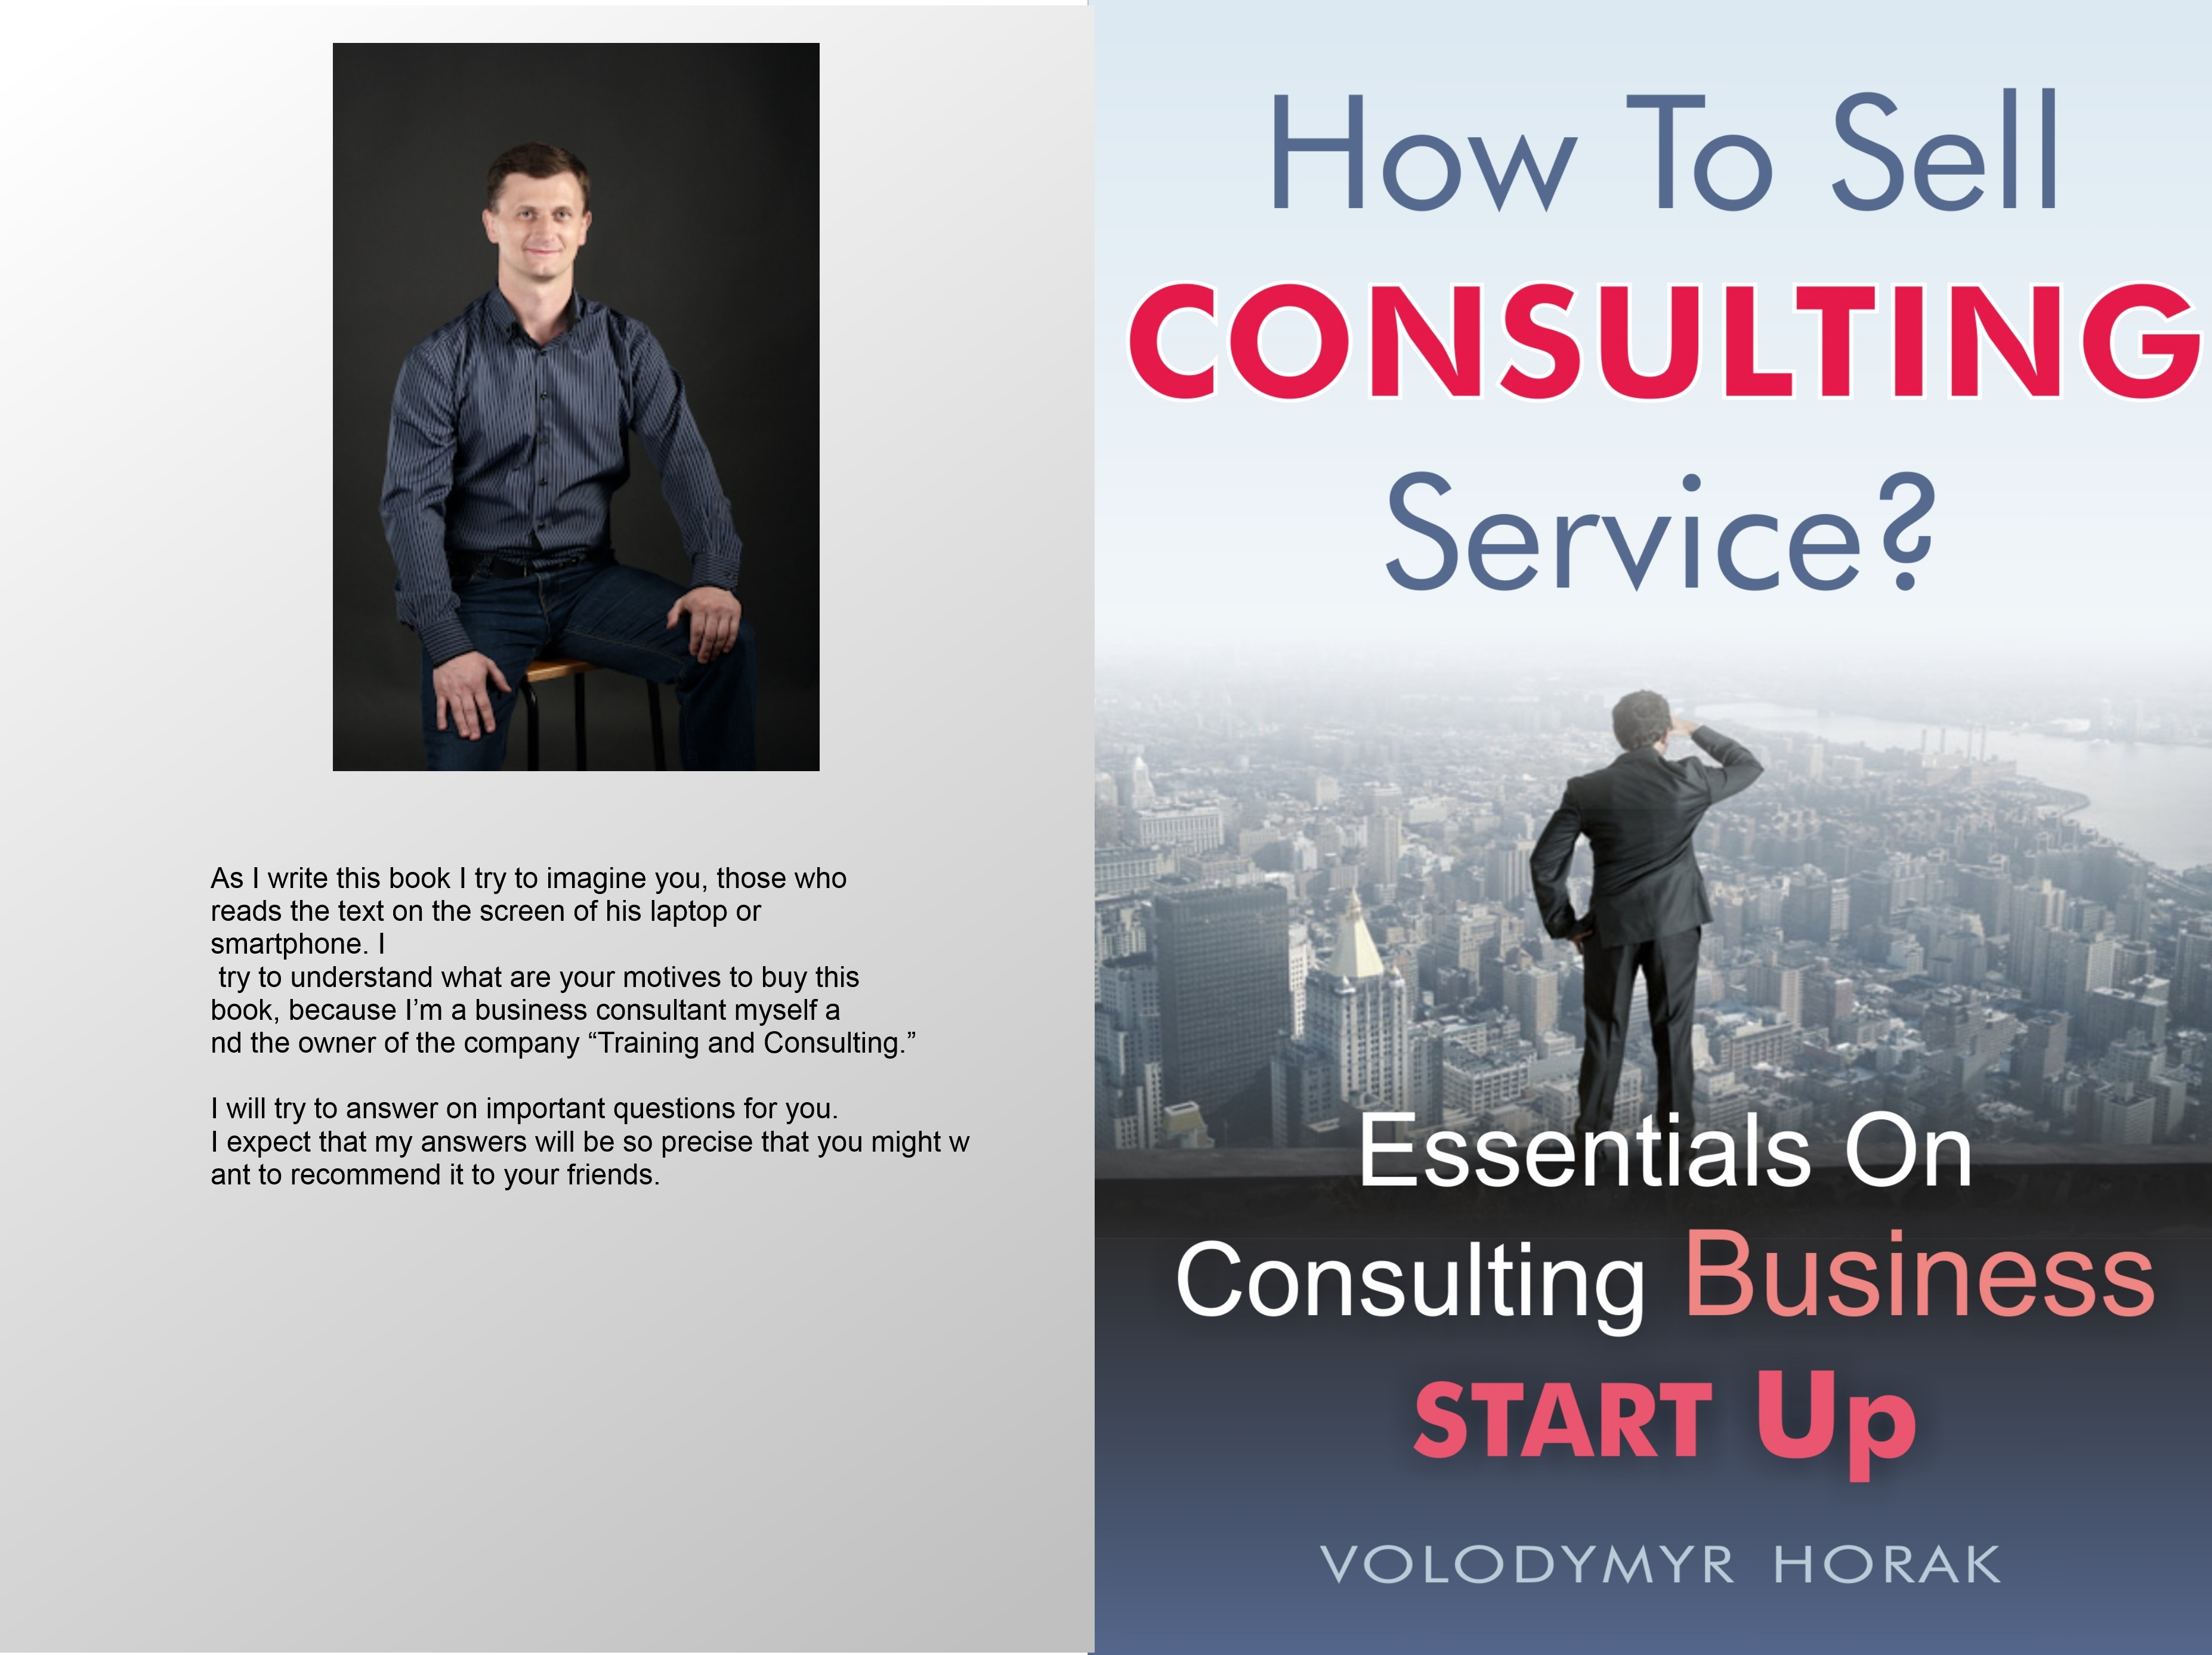 how to sell consultin service?